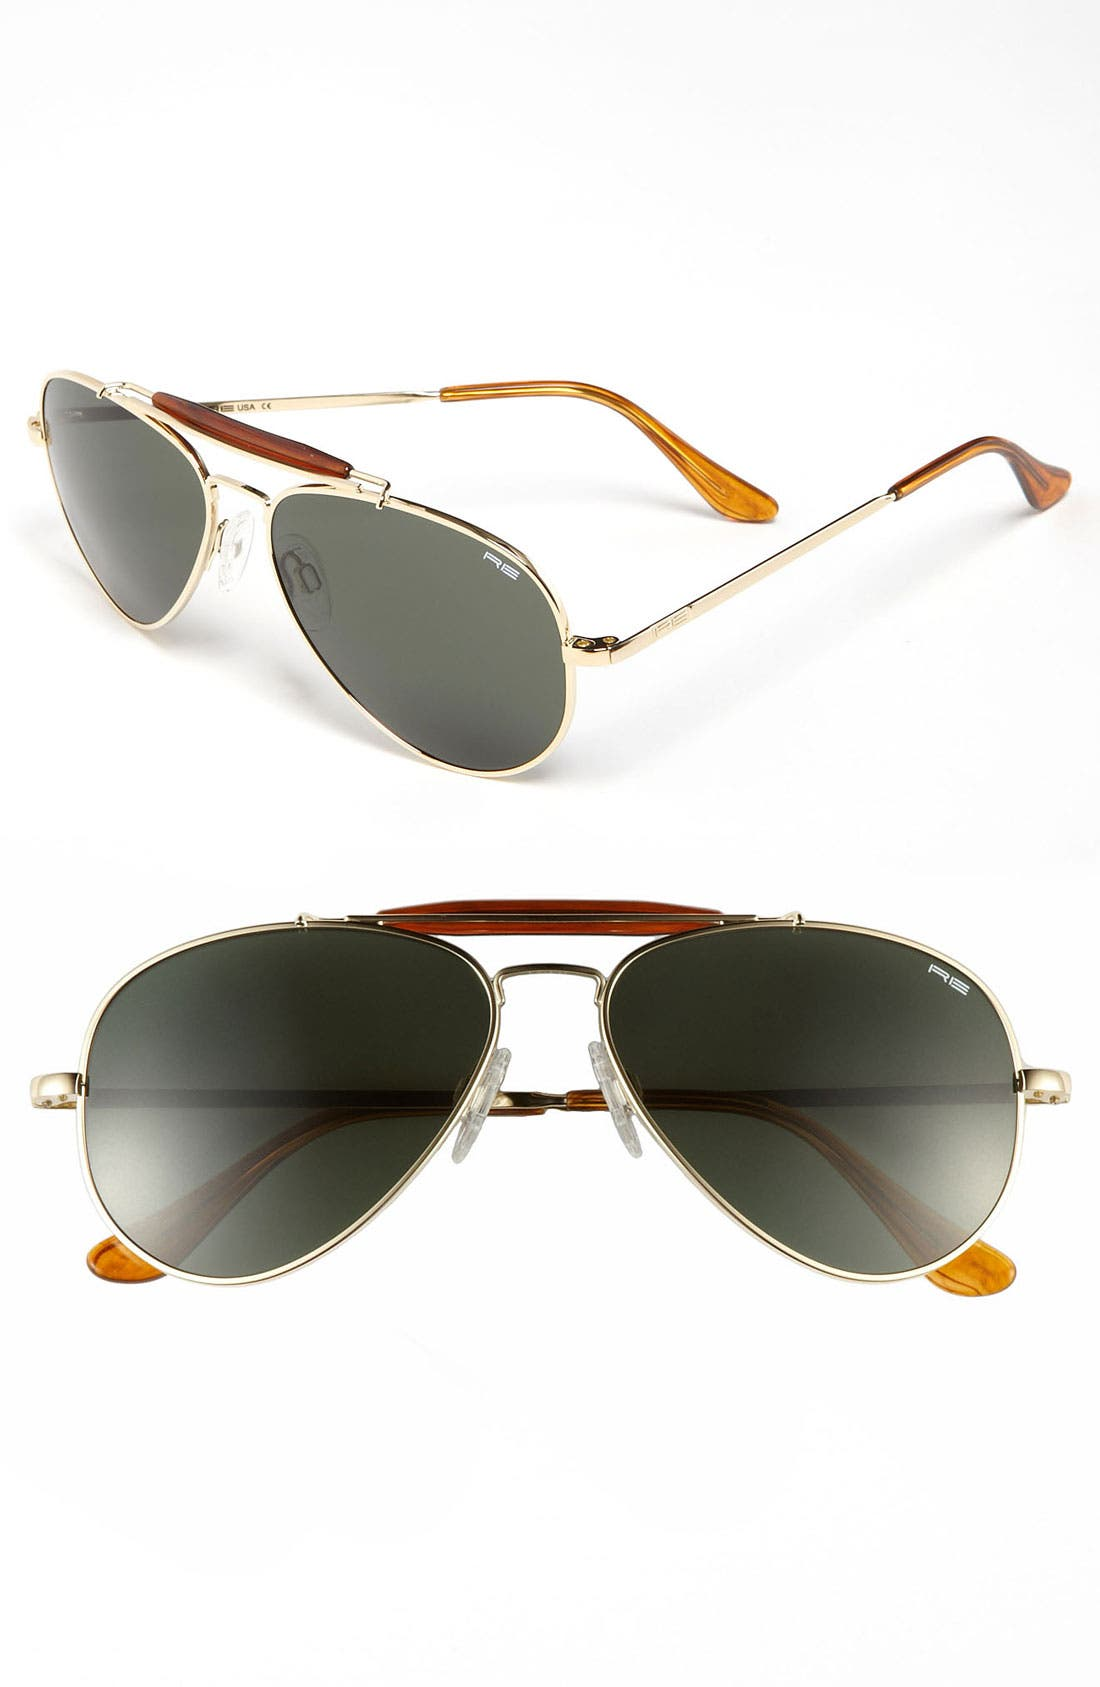 Main Image - Randolph Engineering 'Sportsman' 57mm Sunglasses